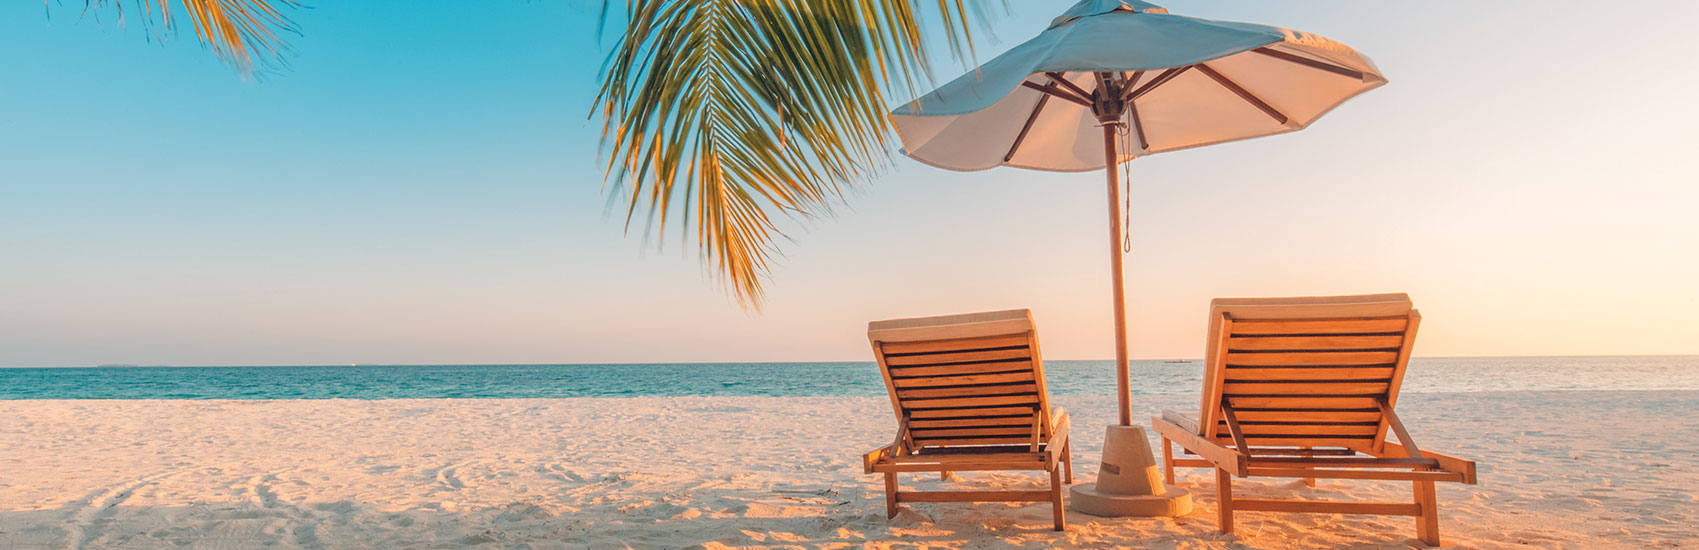 Save up to $300 per booking With Delta Vacations® 0